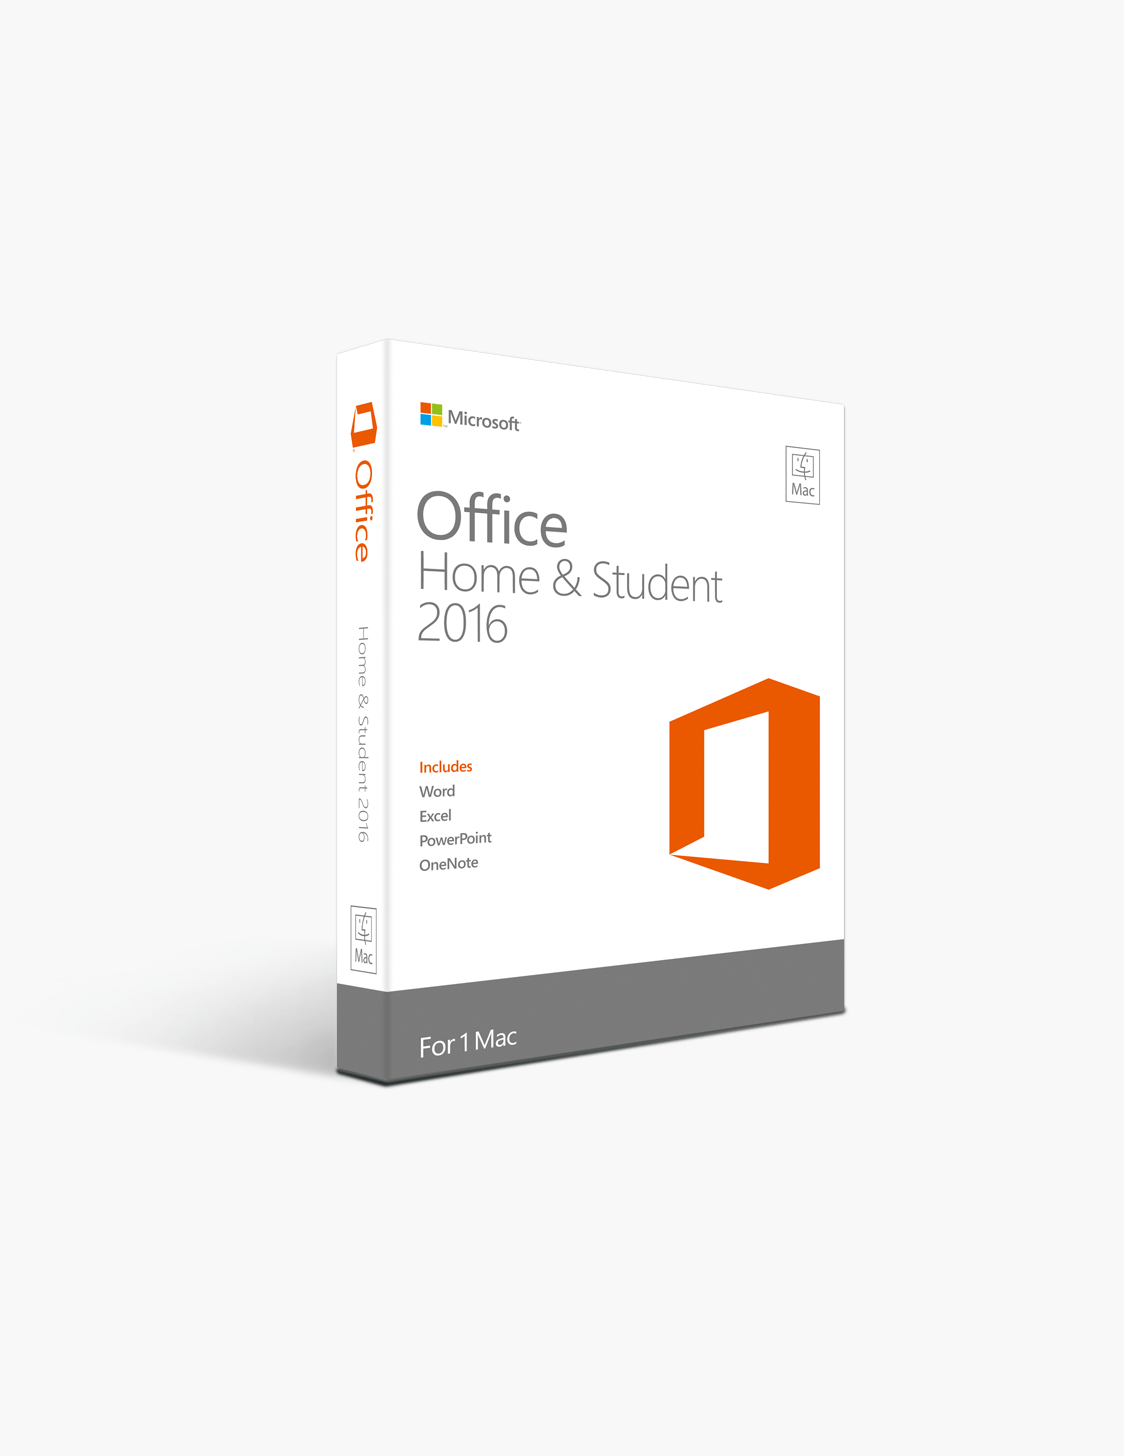 Microsoft Office 2016 Home & Student Mac Download.